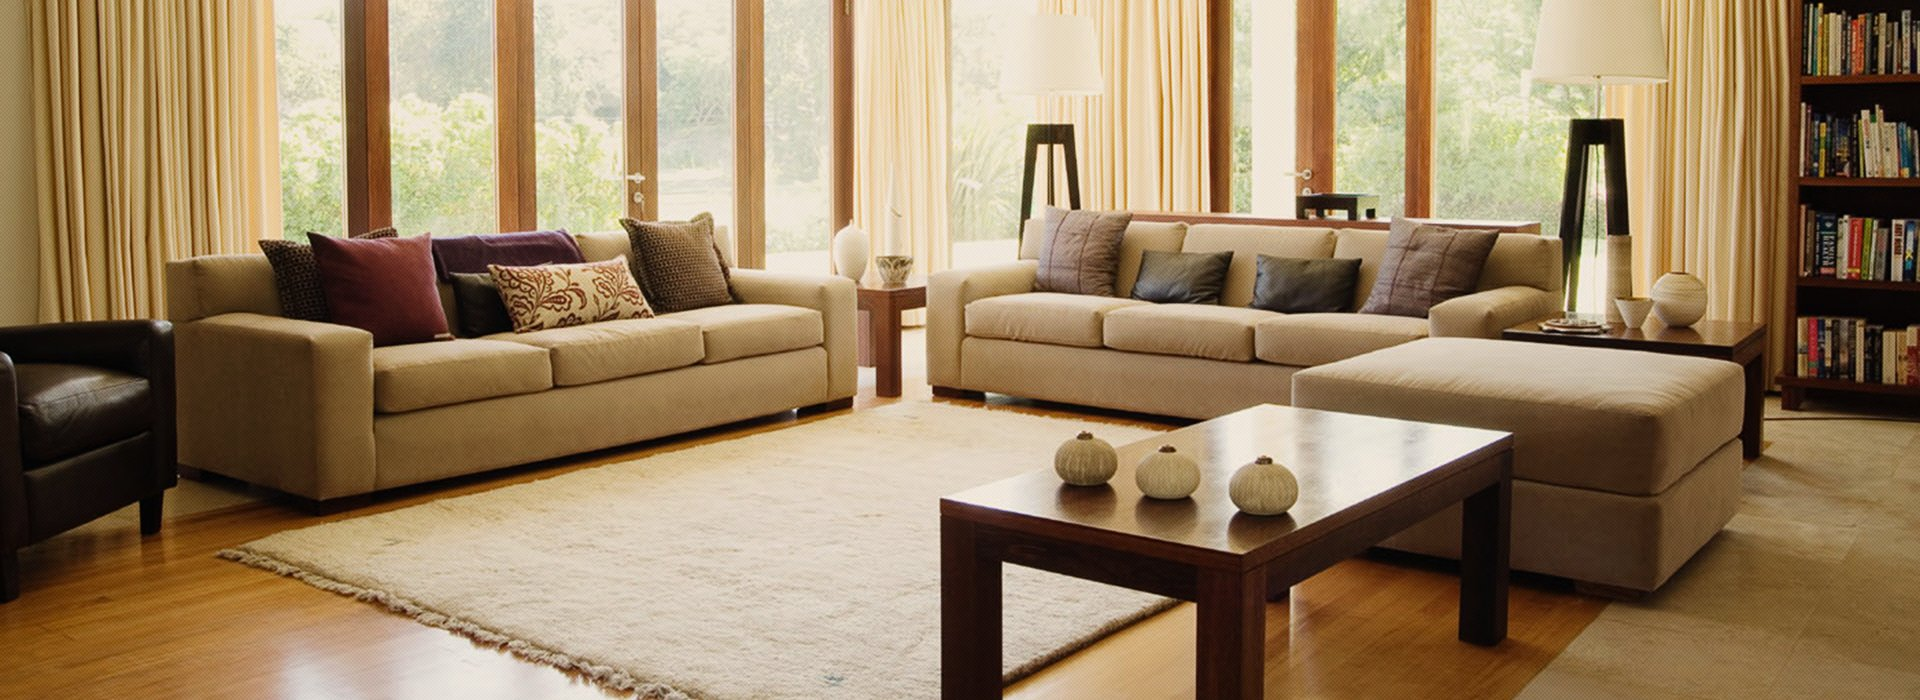 Two long beige sofas at right angles in a corner window around a cream rug, with a wooden coffee table and large stool matching the sofas